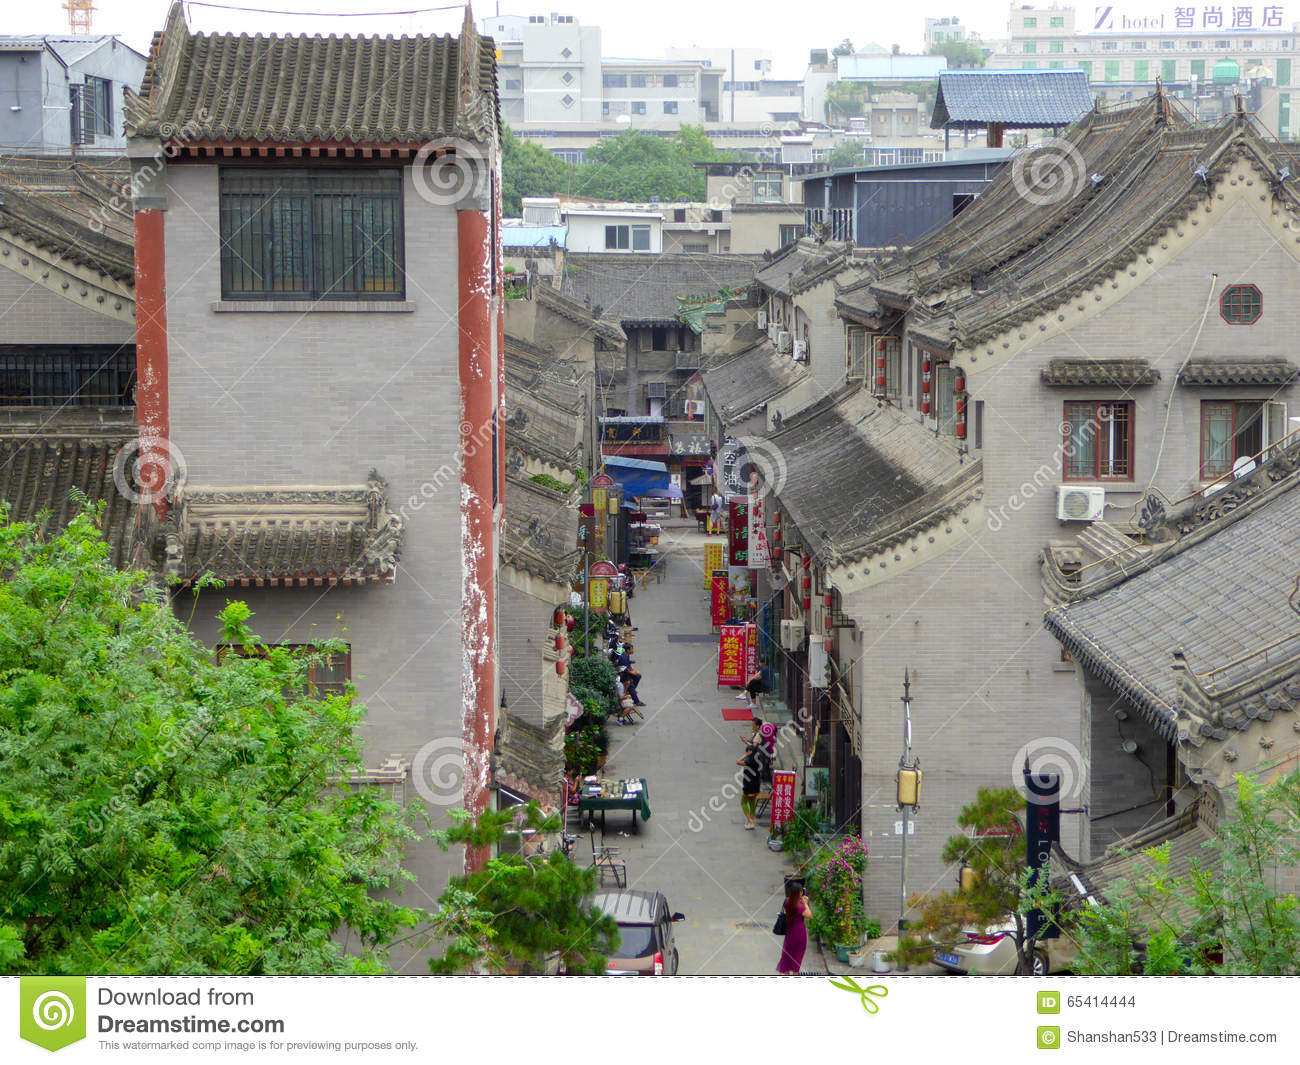 The Xi'an Architecture